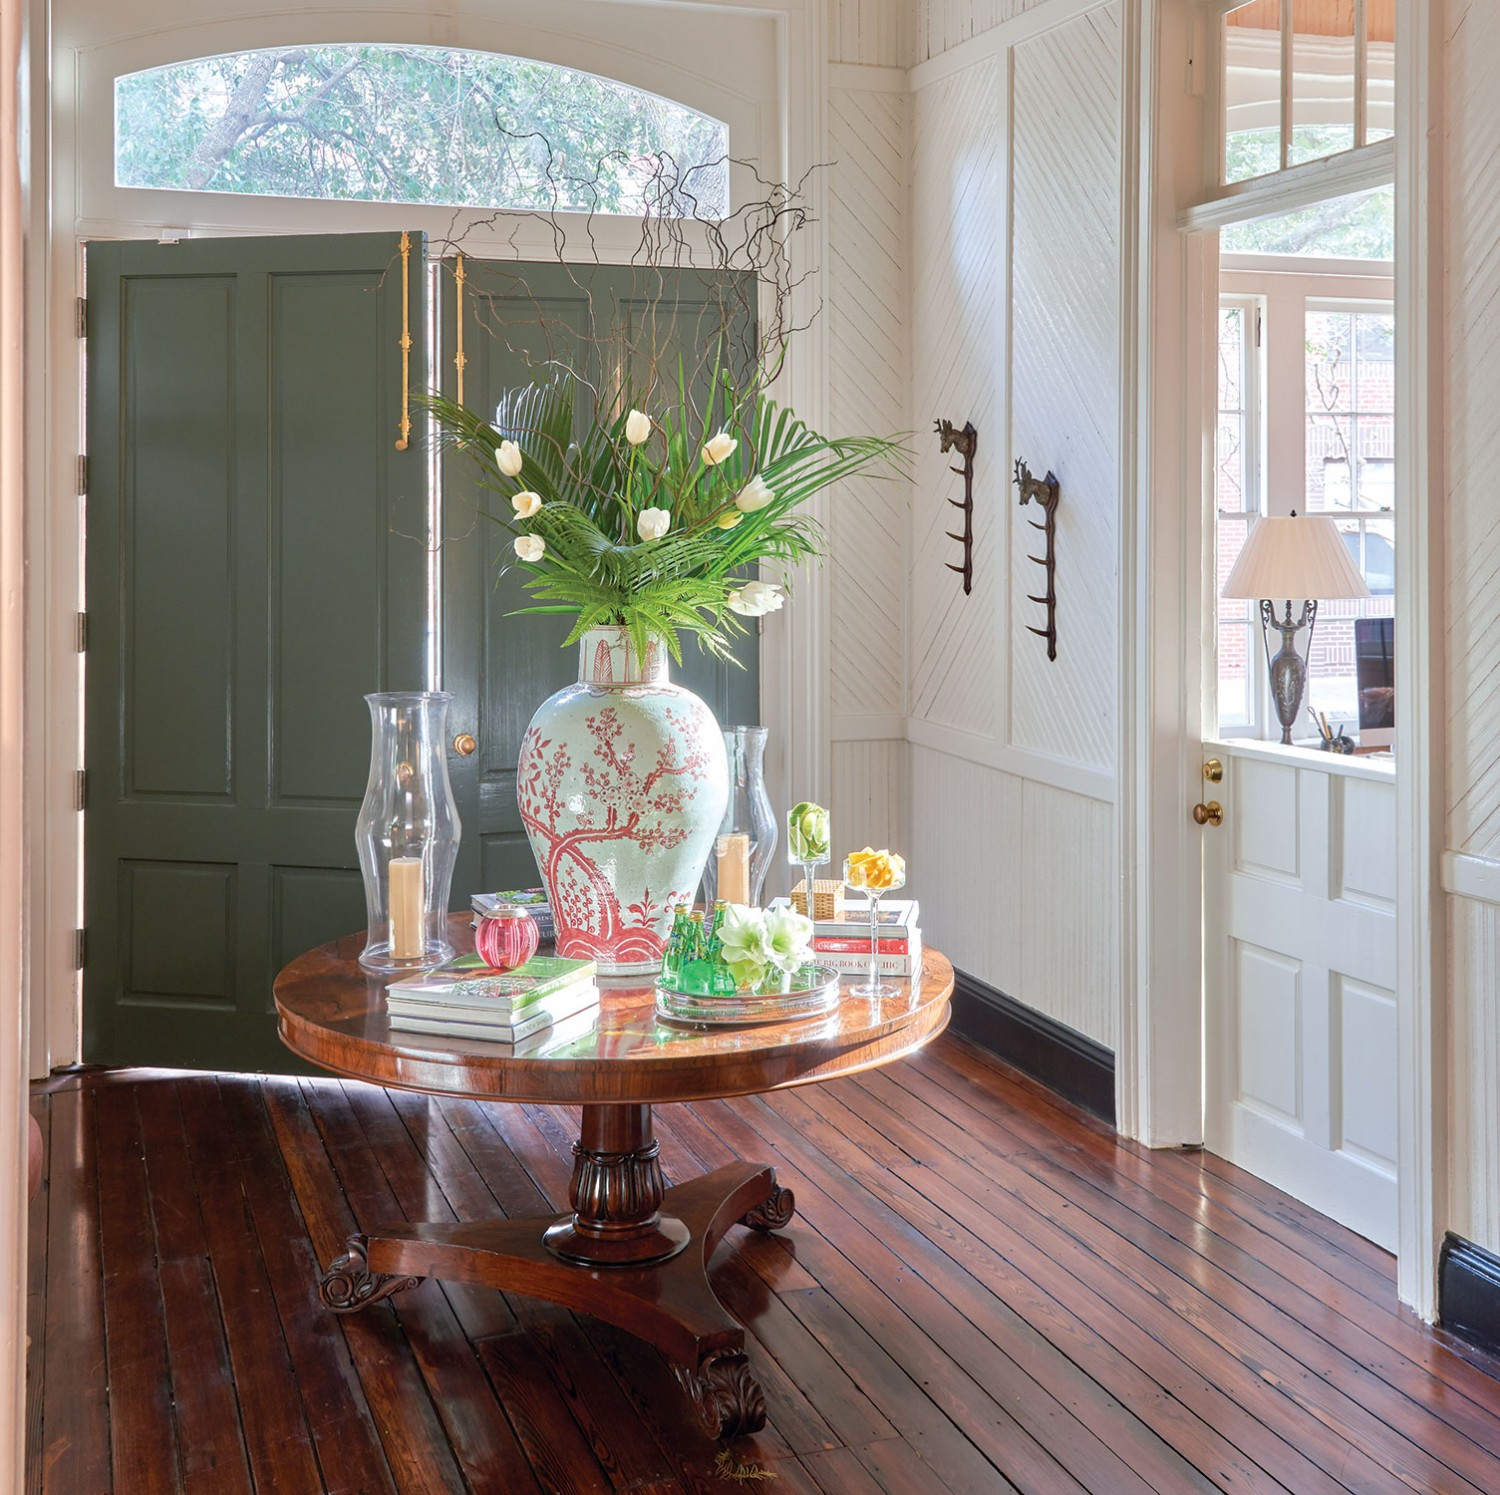 A Regency Table Anchors The Foyer In Tammy Connoru0027s Charleston Design  Studio. She Worked With Lotus Flower To Arrange Palms, Tulips, And Branches  In The ...